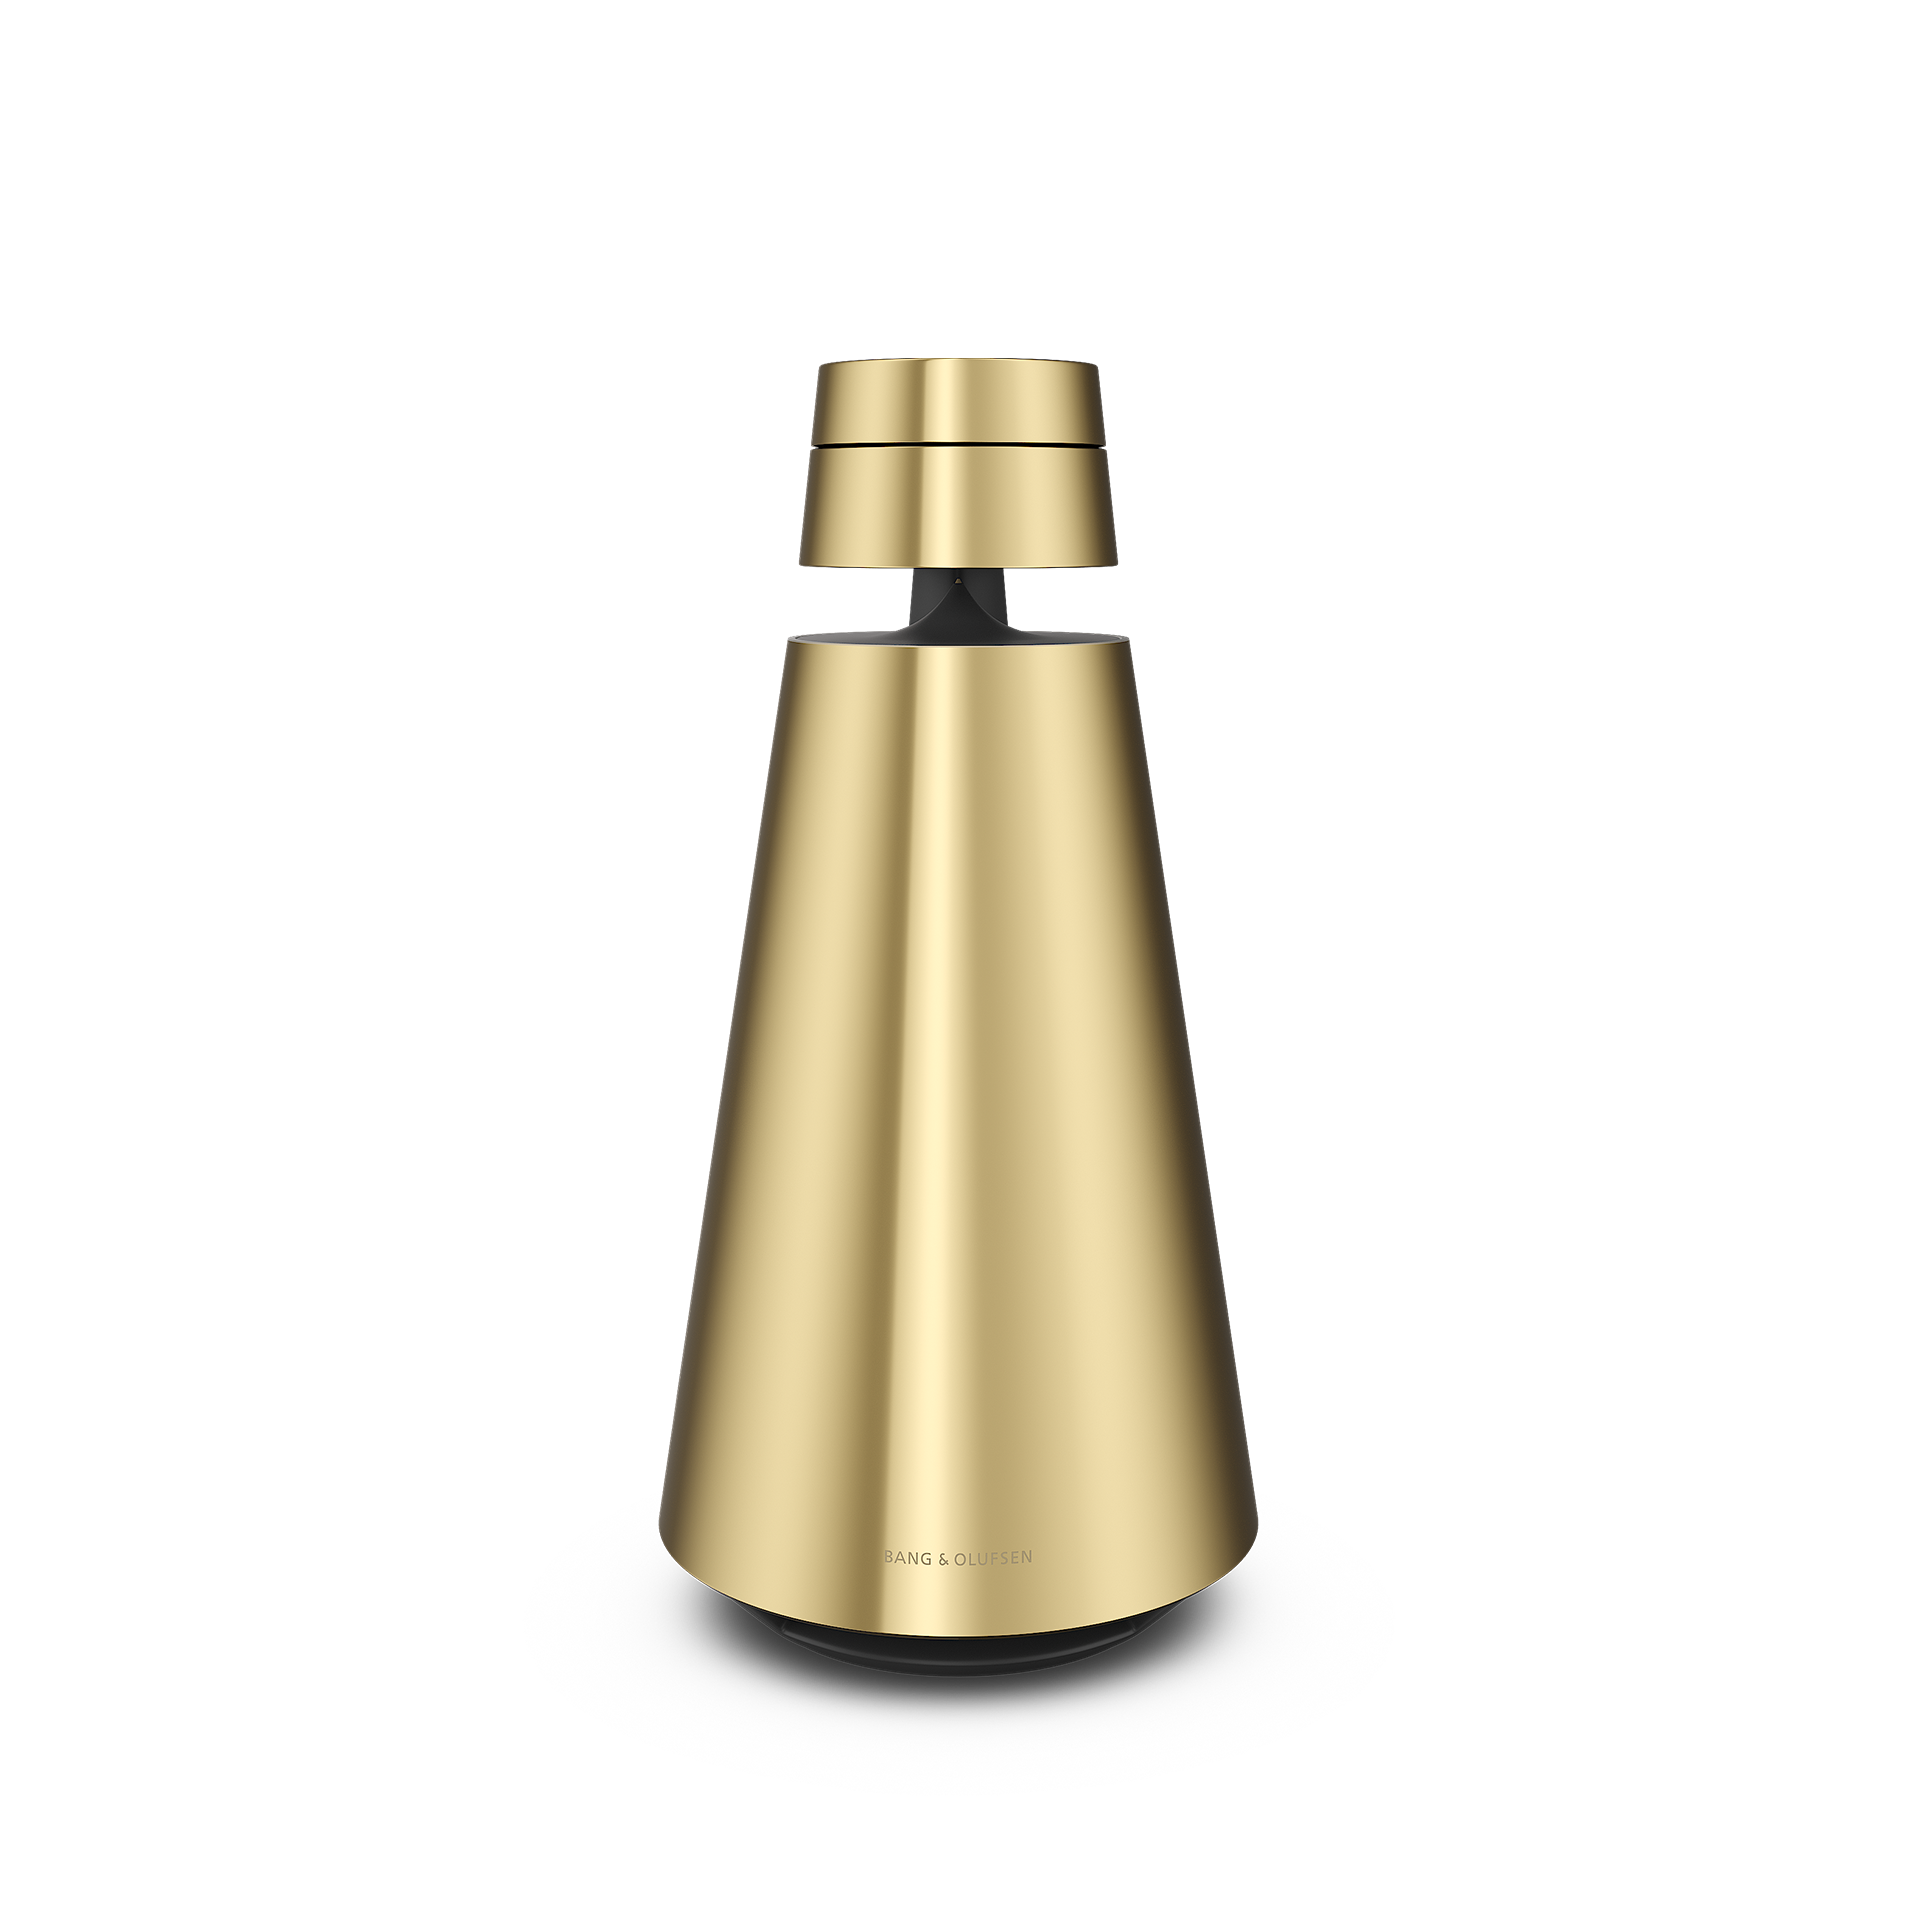 Beosound 1 with Google Assistant